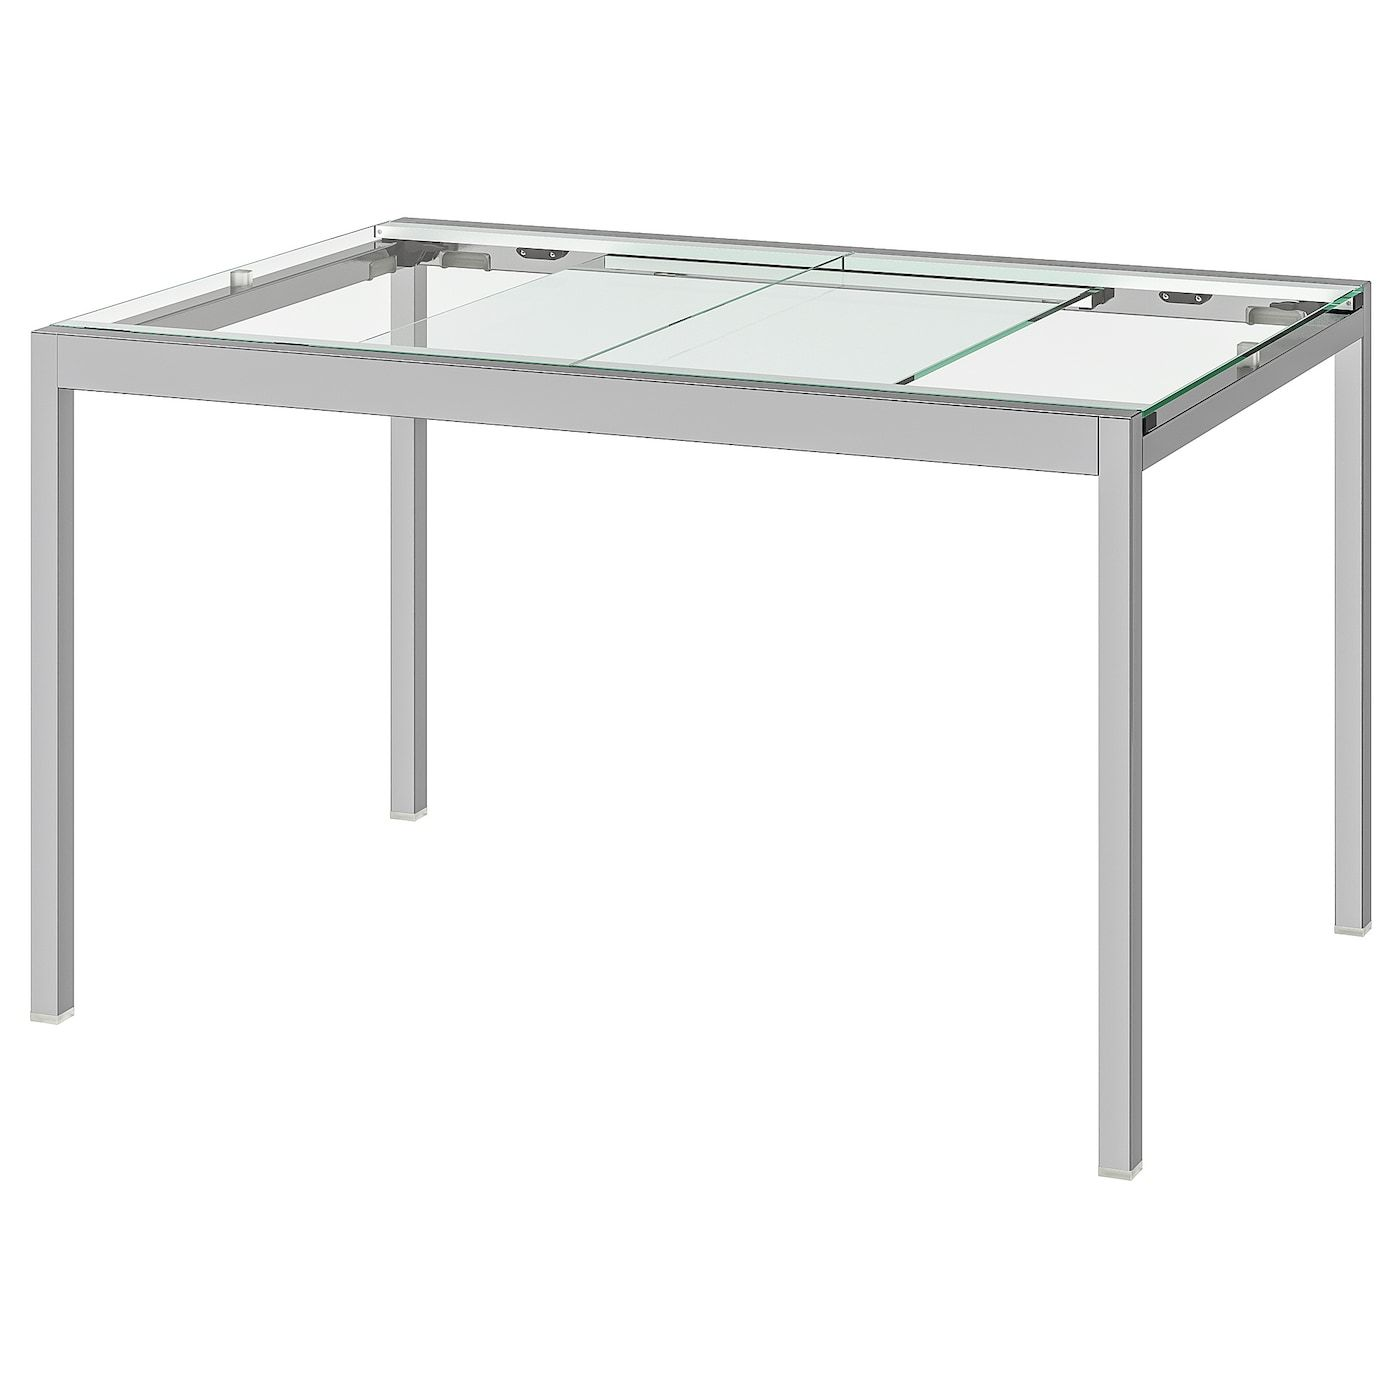 Glivarp Extendable Table Transparent Chrome Plated Ikea Extendable Glass Dining Table Glass Table Glass Top Table